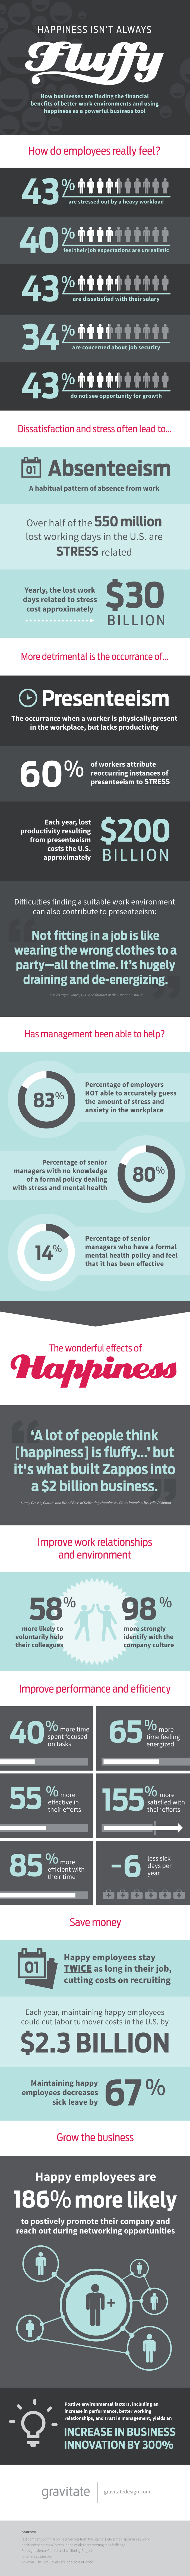 Employee Public Relations - Happiness Infographic